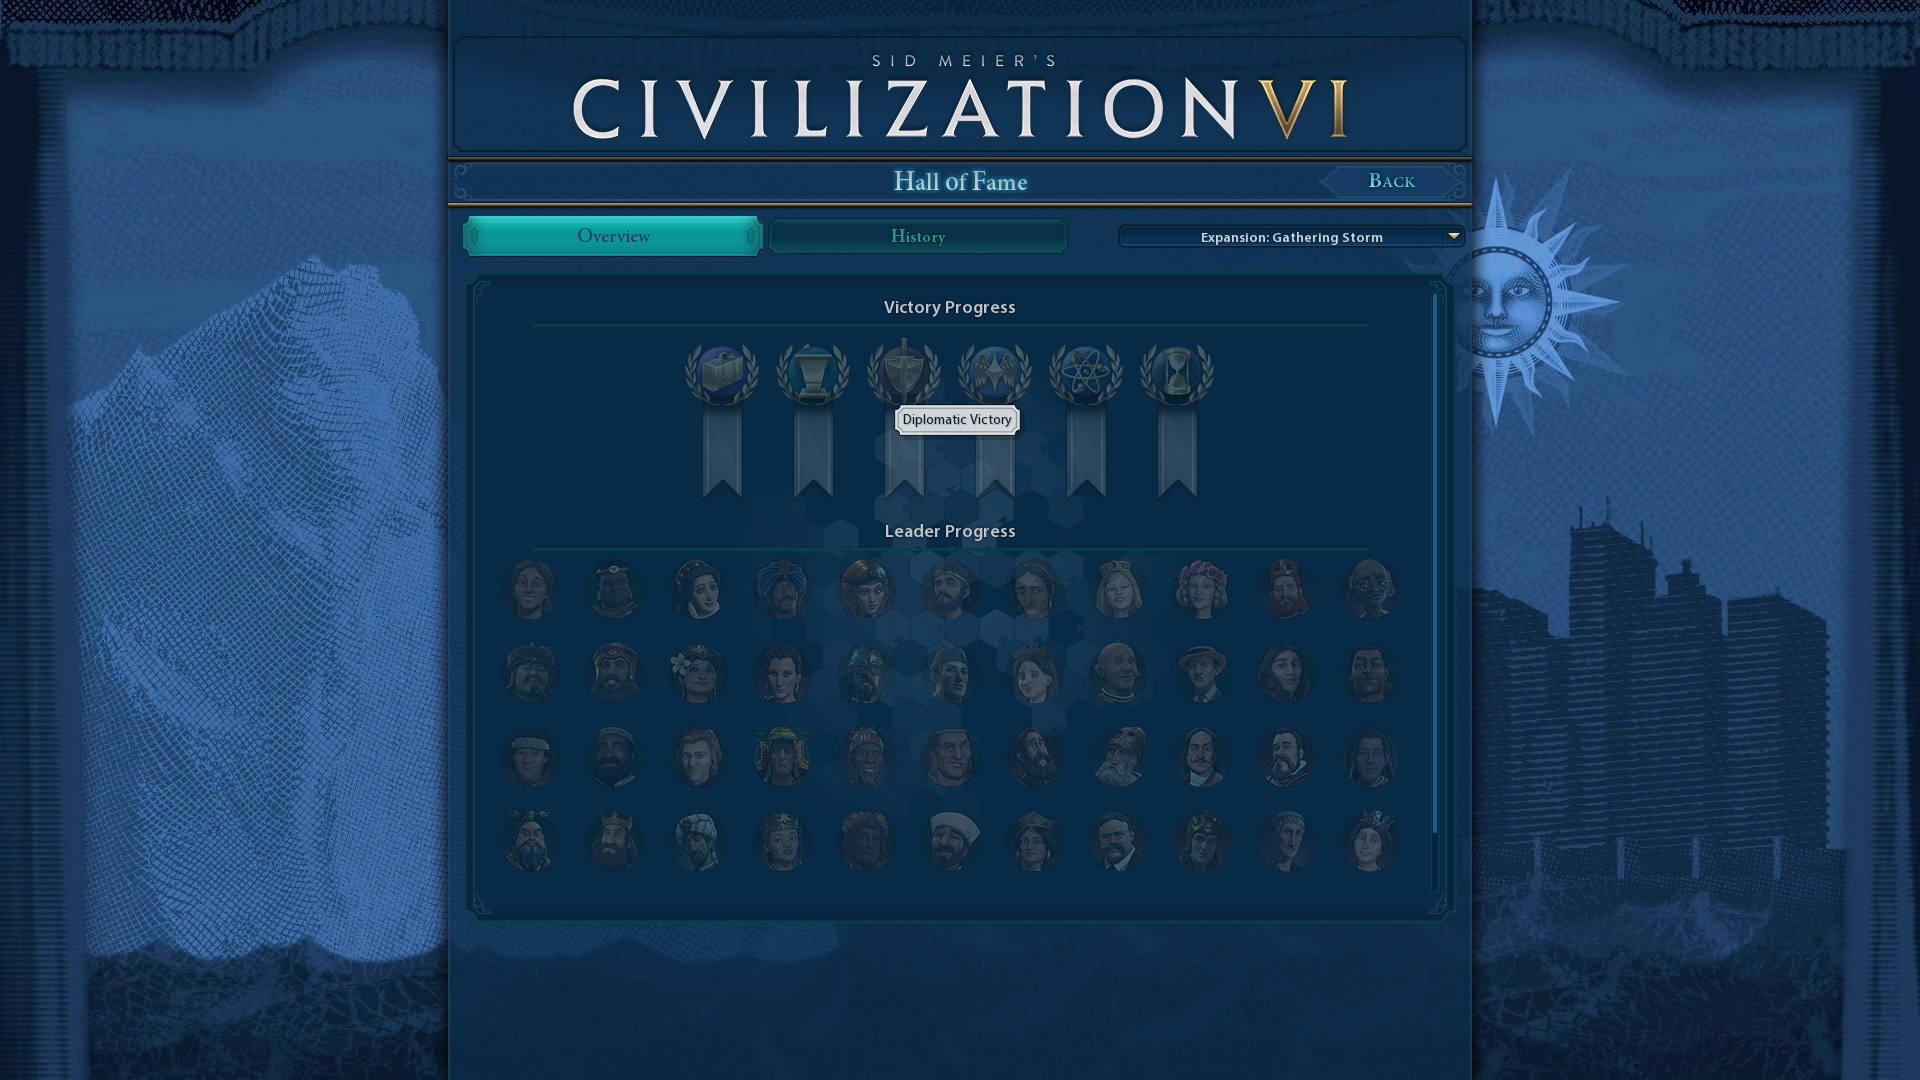 Civ 6 Hall of Fame